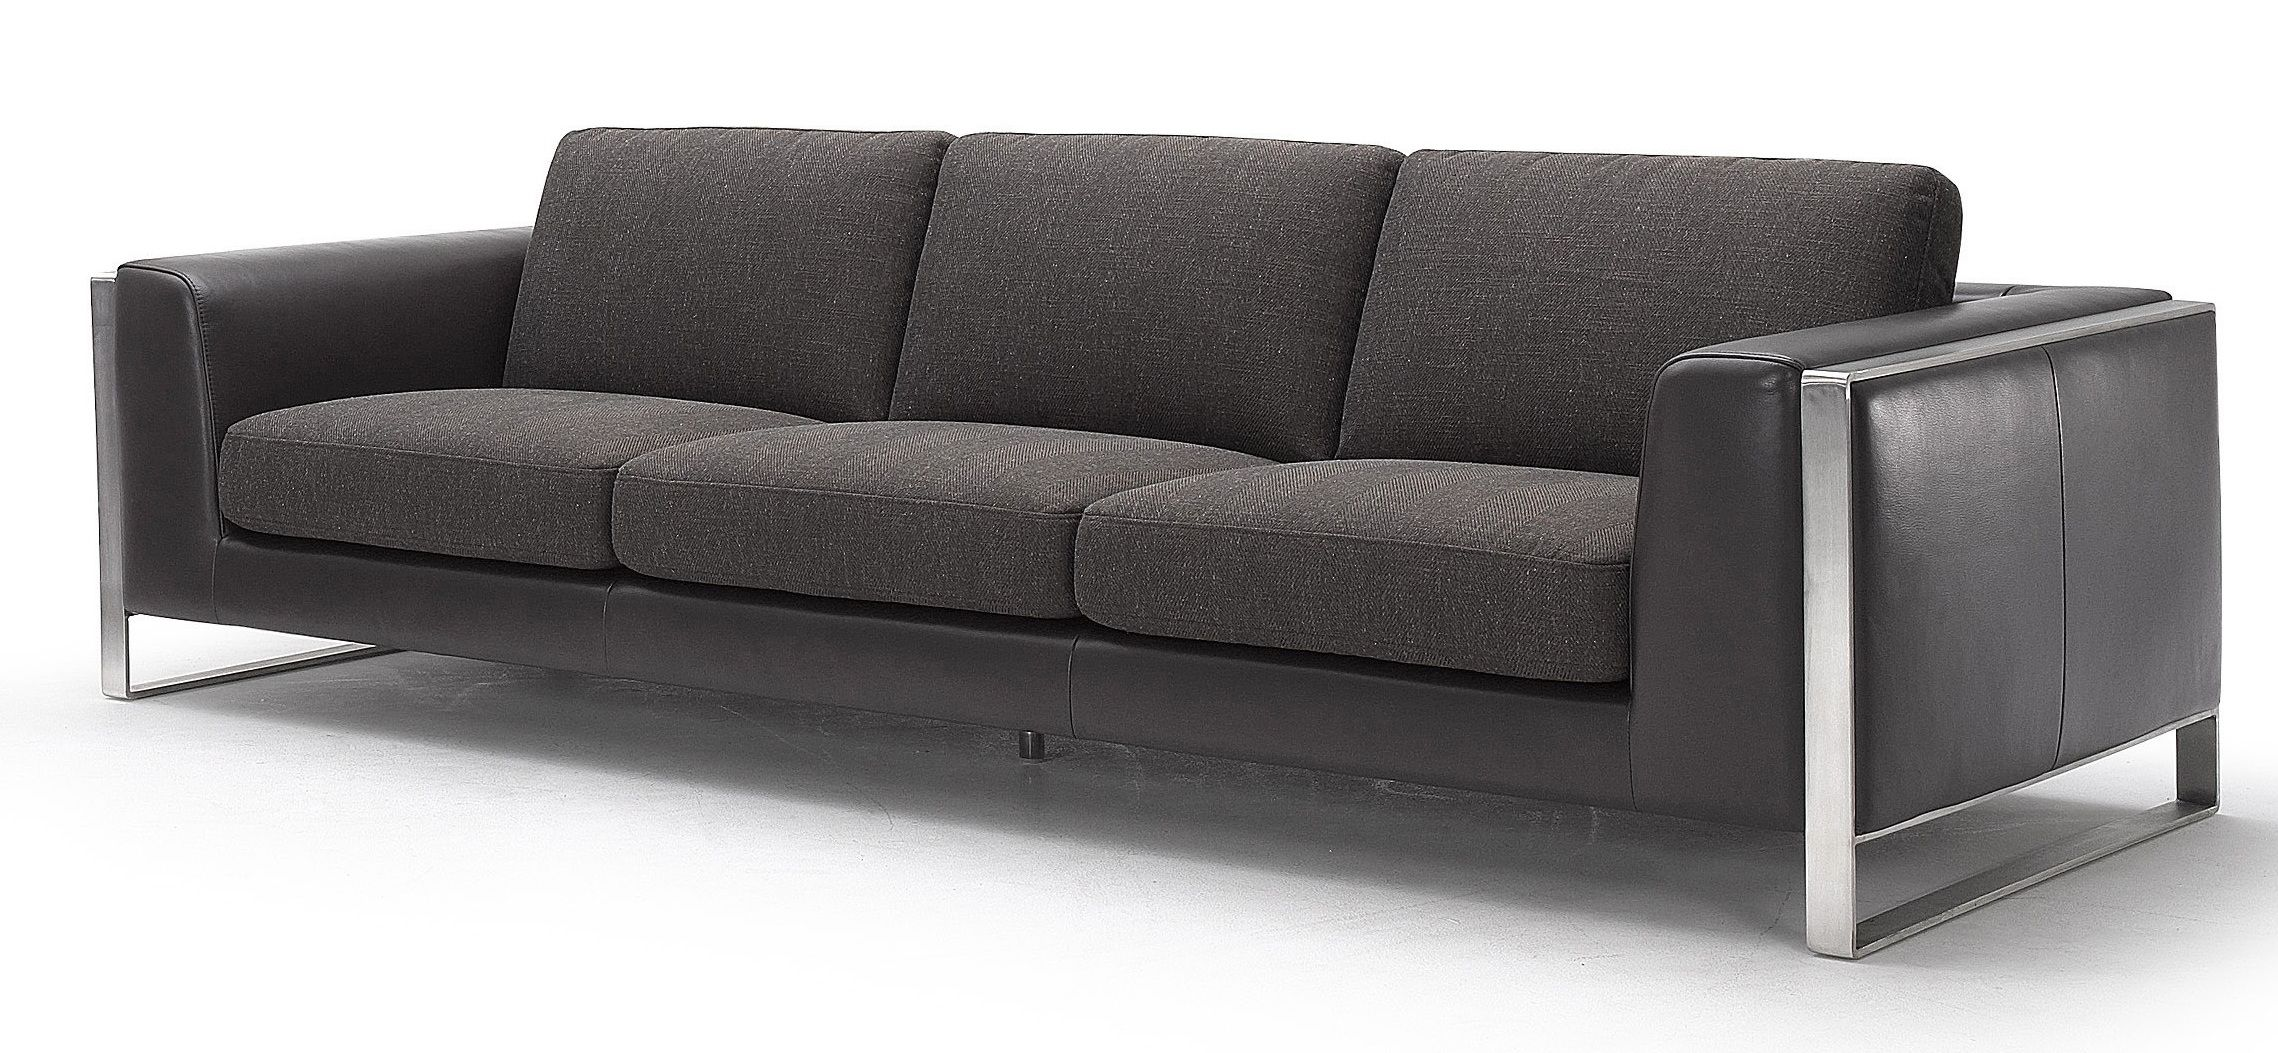 Home Furniture Improvement with Contemporary Sofa | huz.name ...